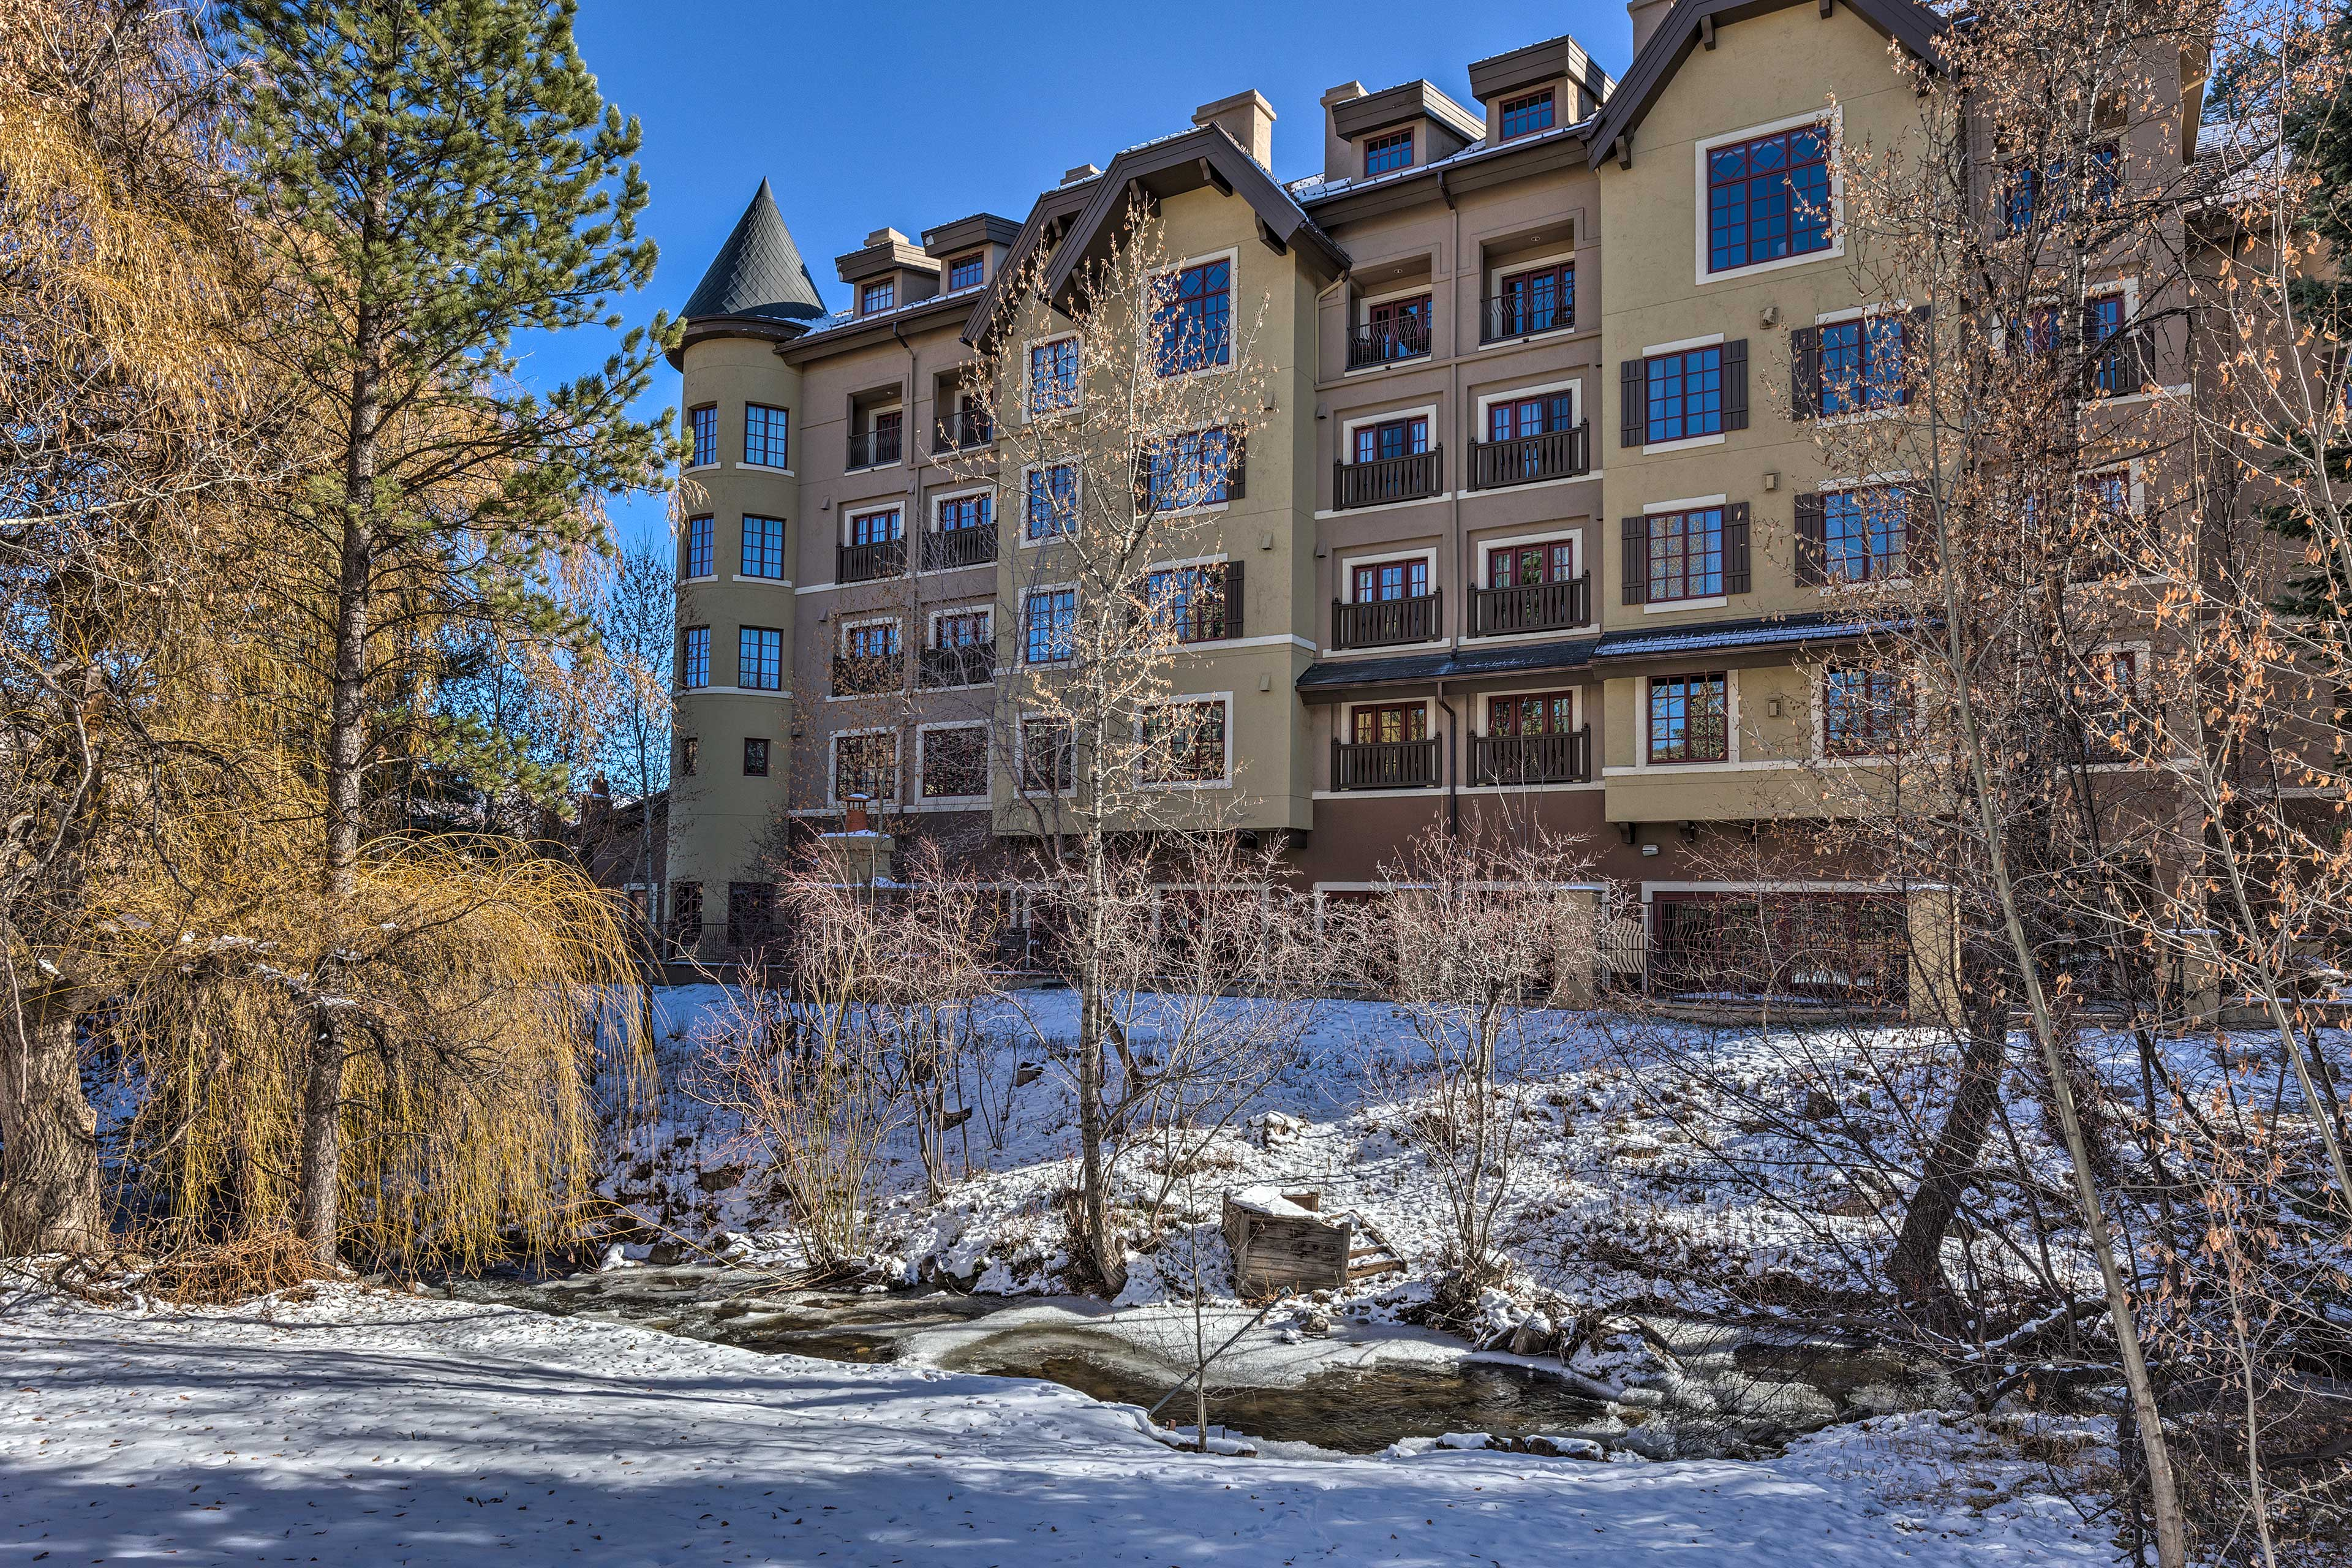 This complex is a picture-perfect example of colorful Colorado!